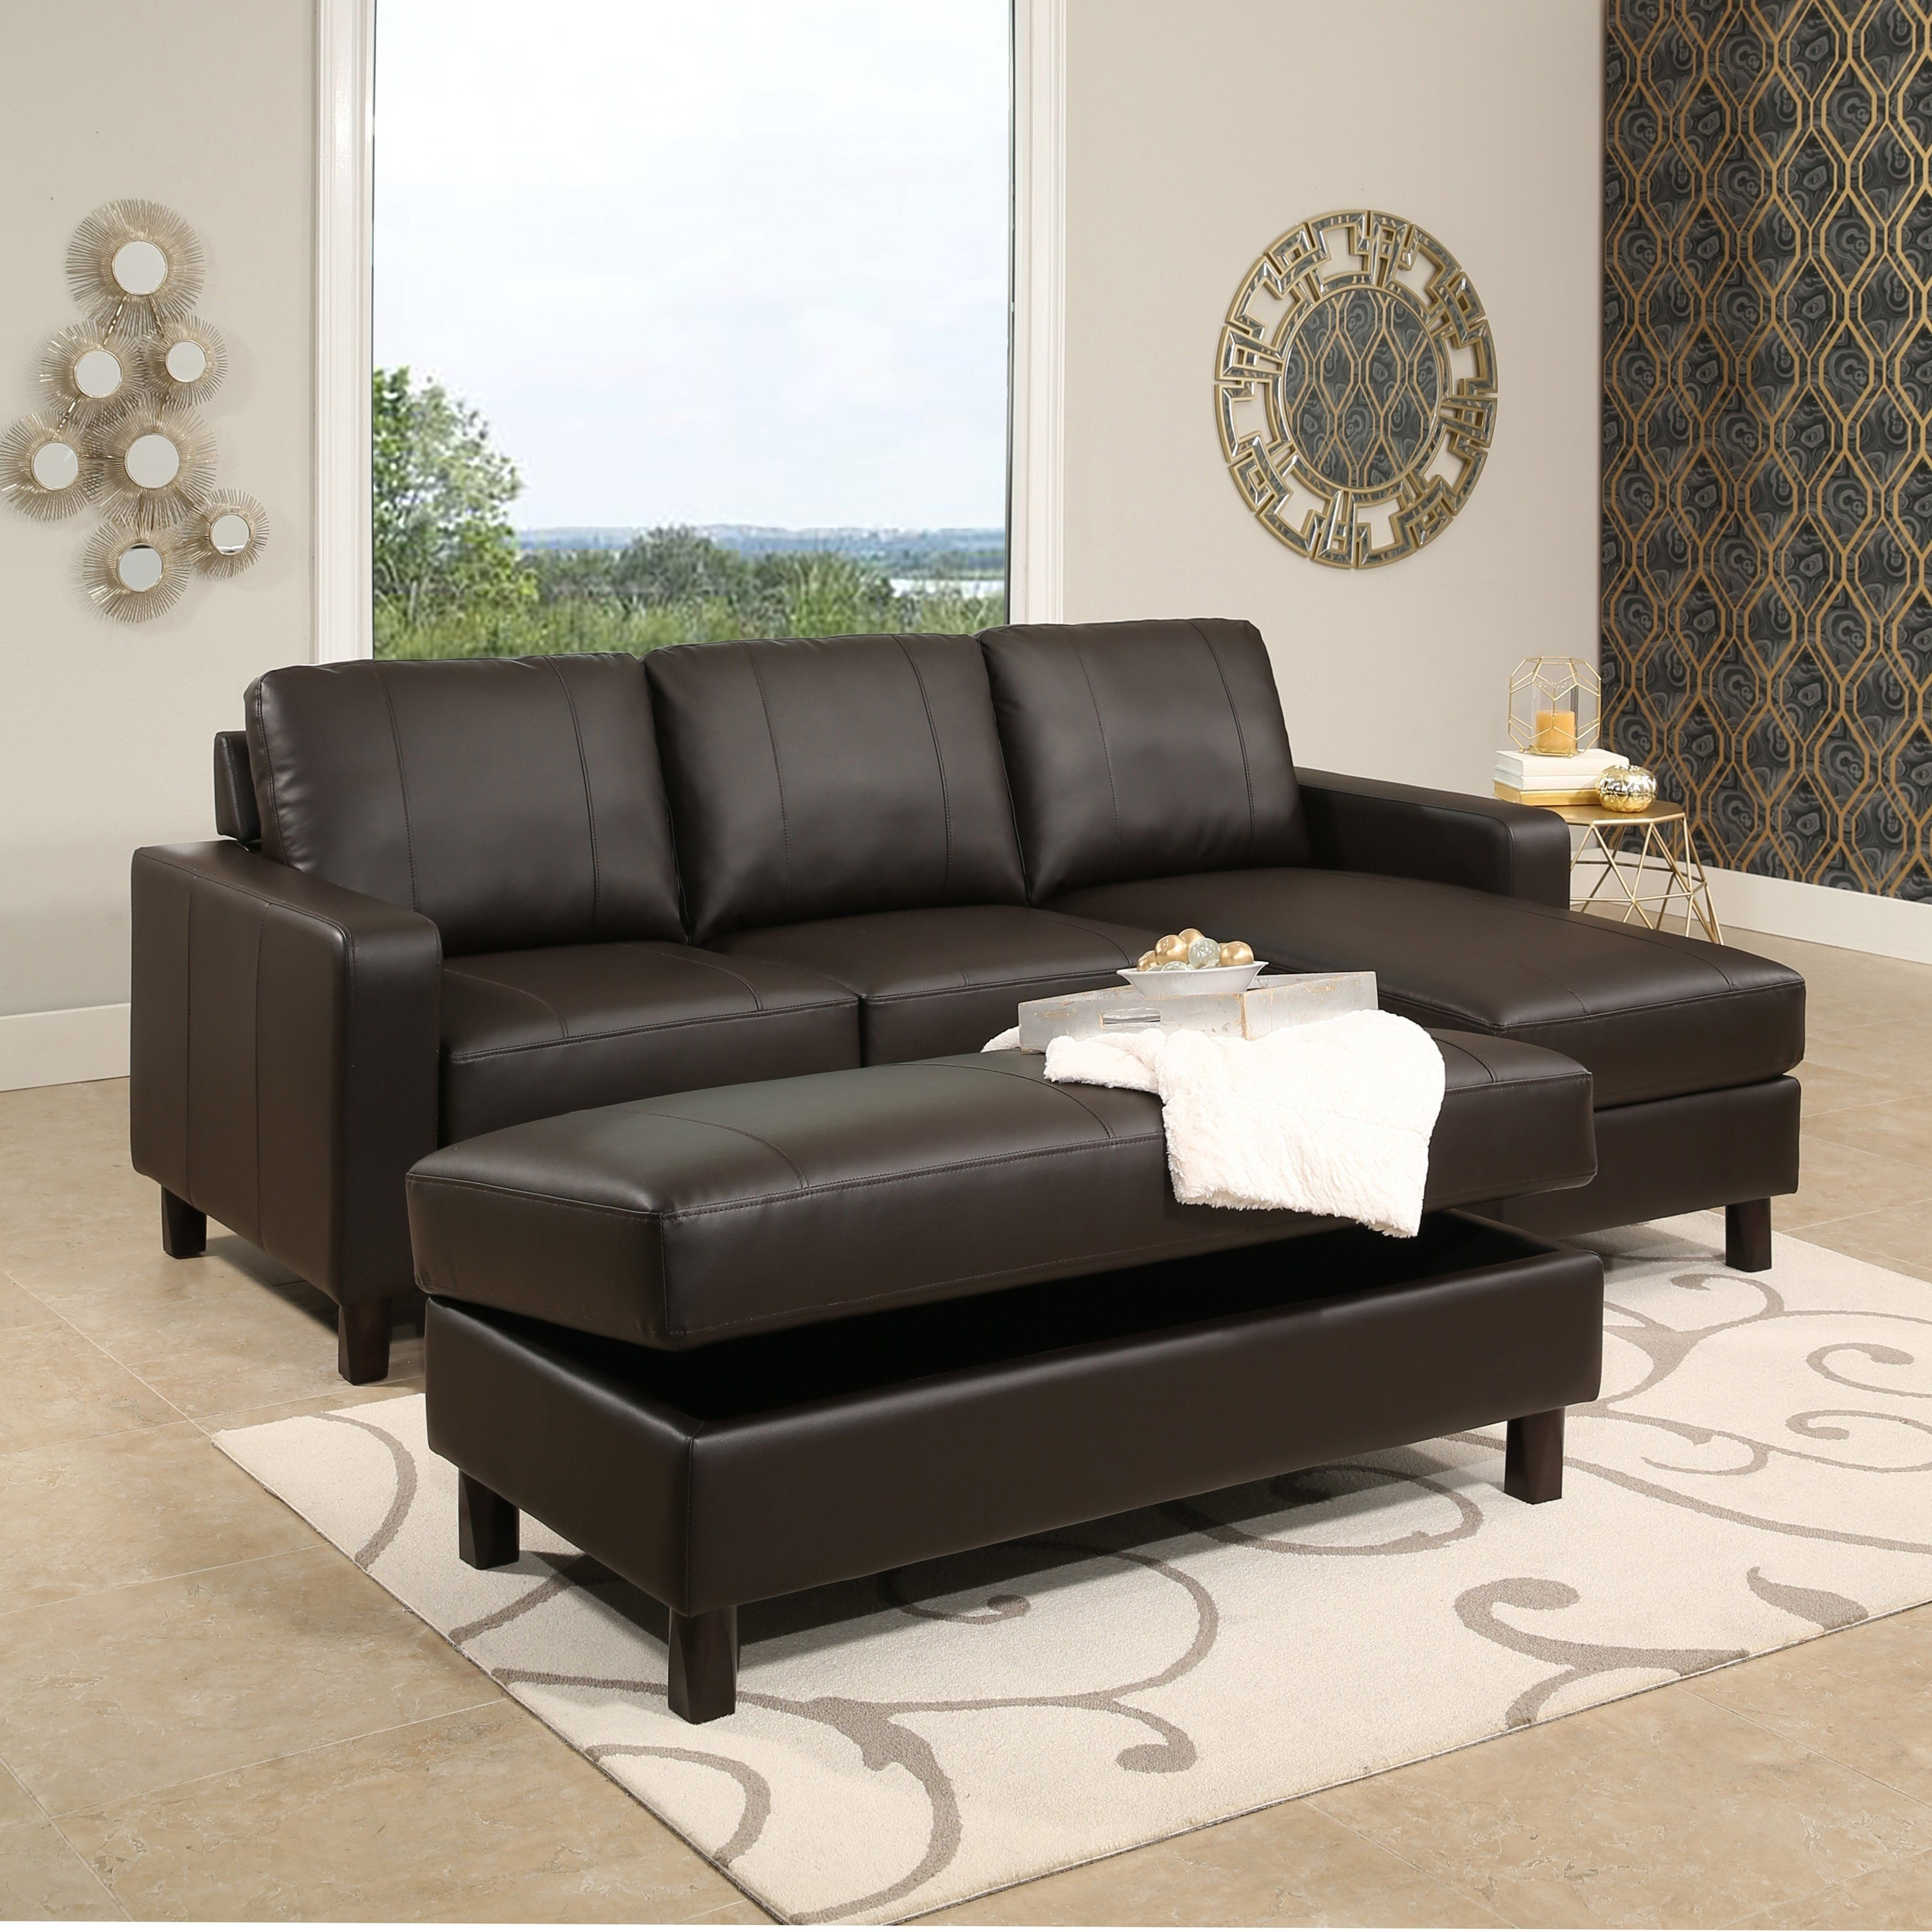 Groovy Abbyson Hampton Brown Leather Reversible Sectional And Ncnpc Chair Design For Home Ncnpcorg